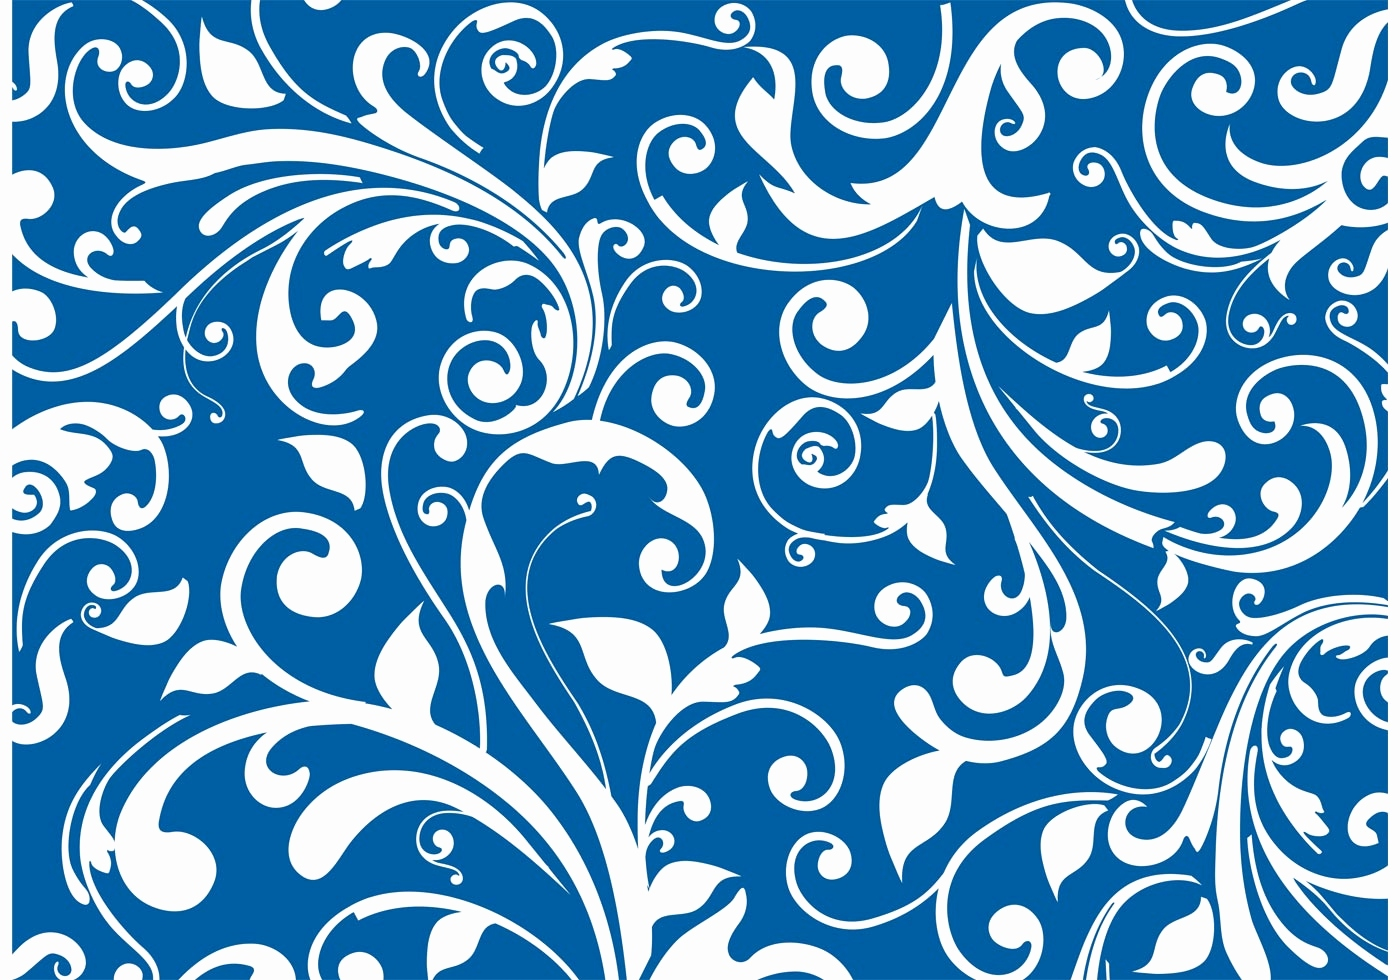 Swirly Wallpapers Beautiful Floral Swirly Vector Background.